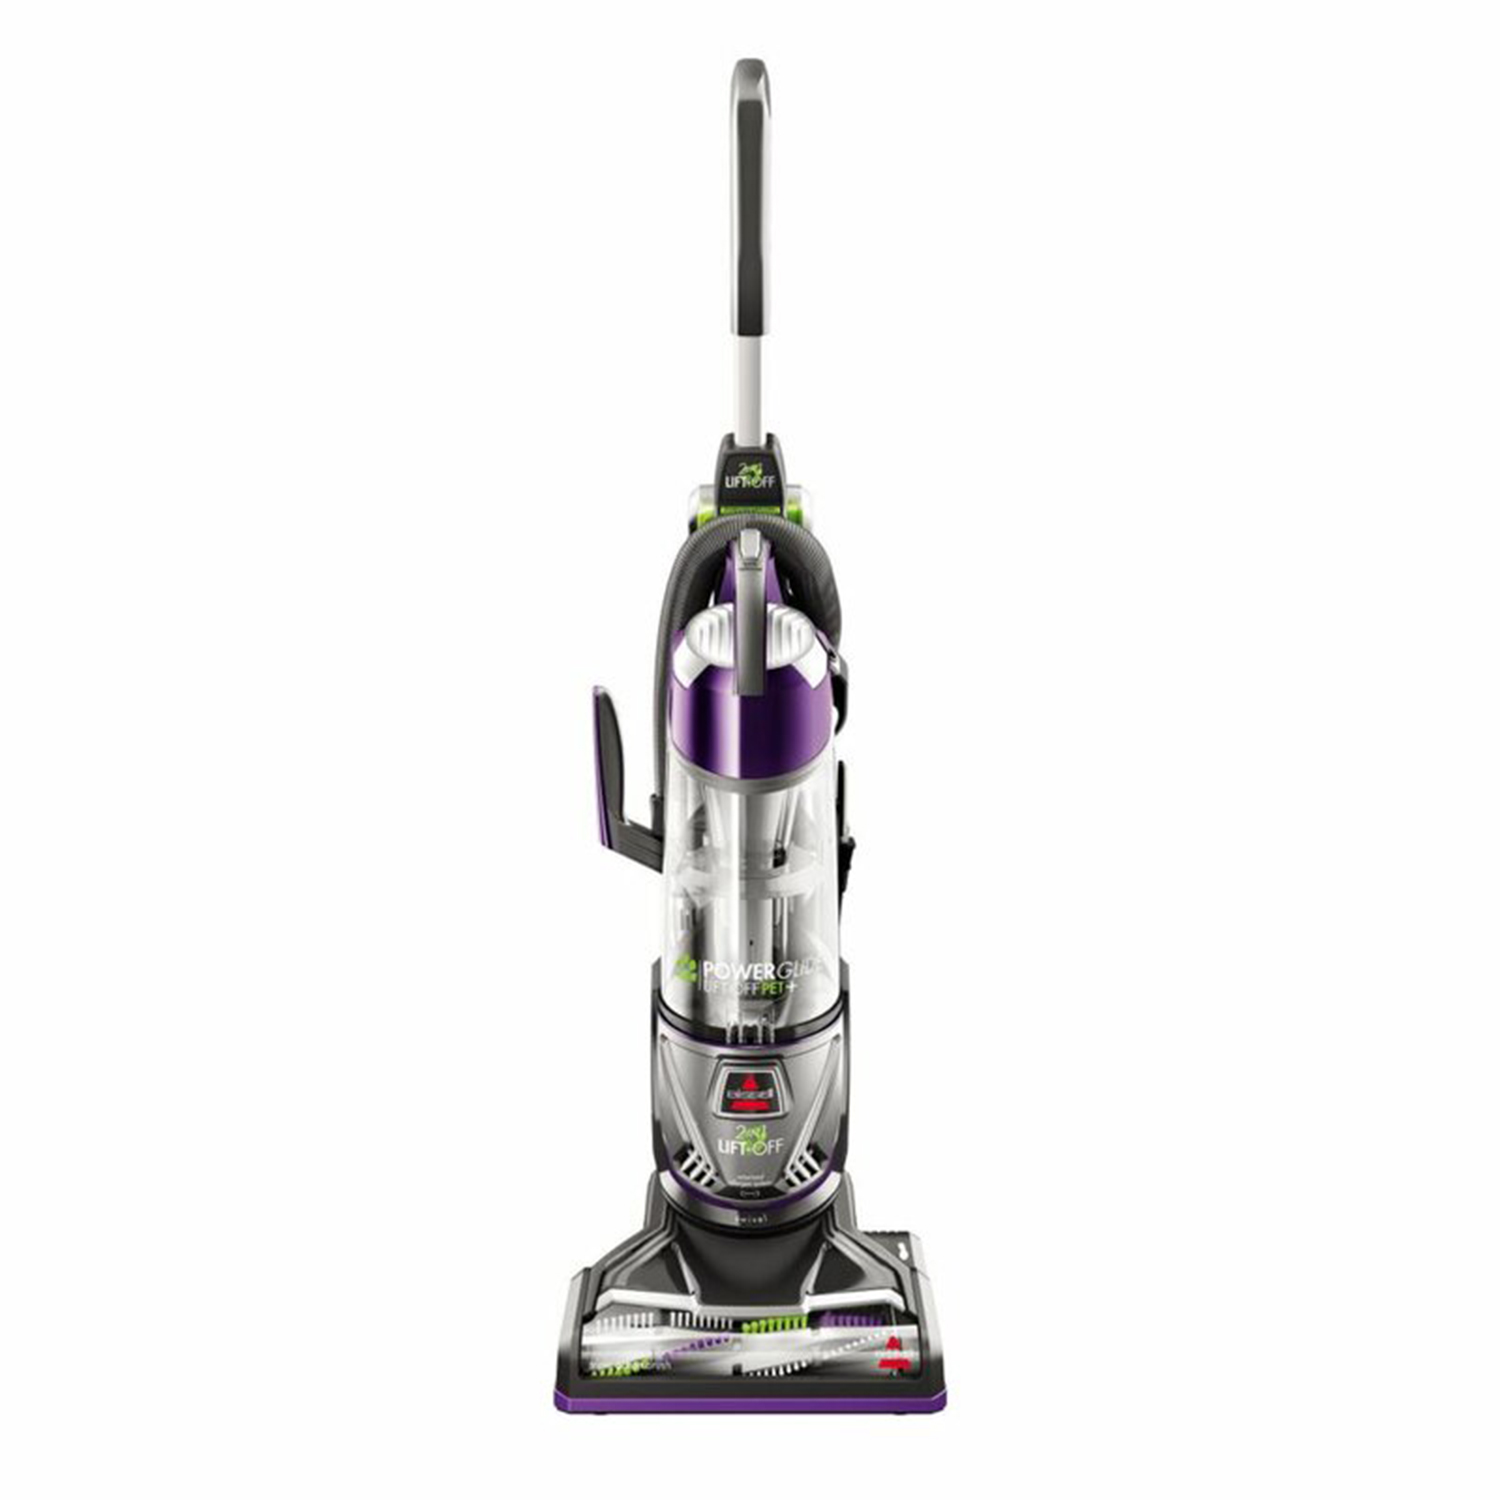 Vacuums from Wayfair